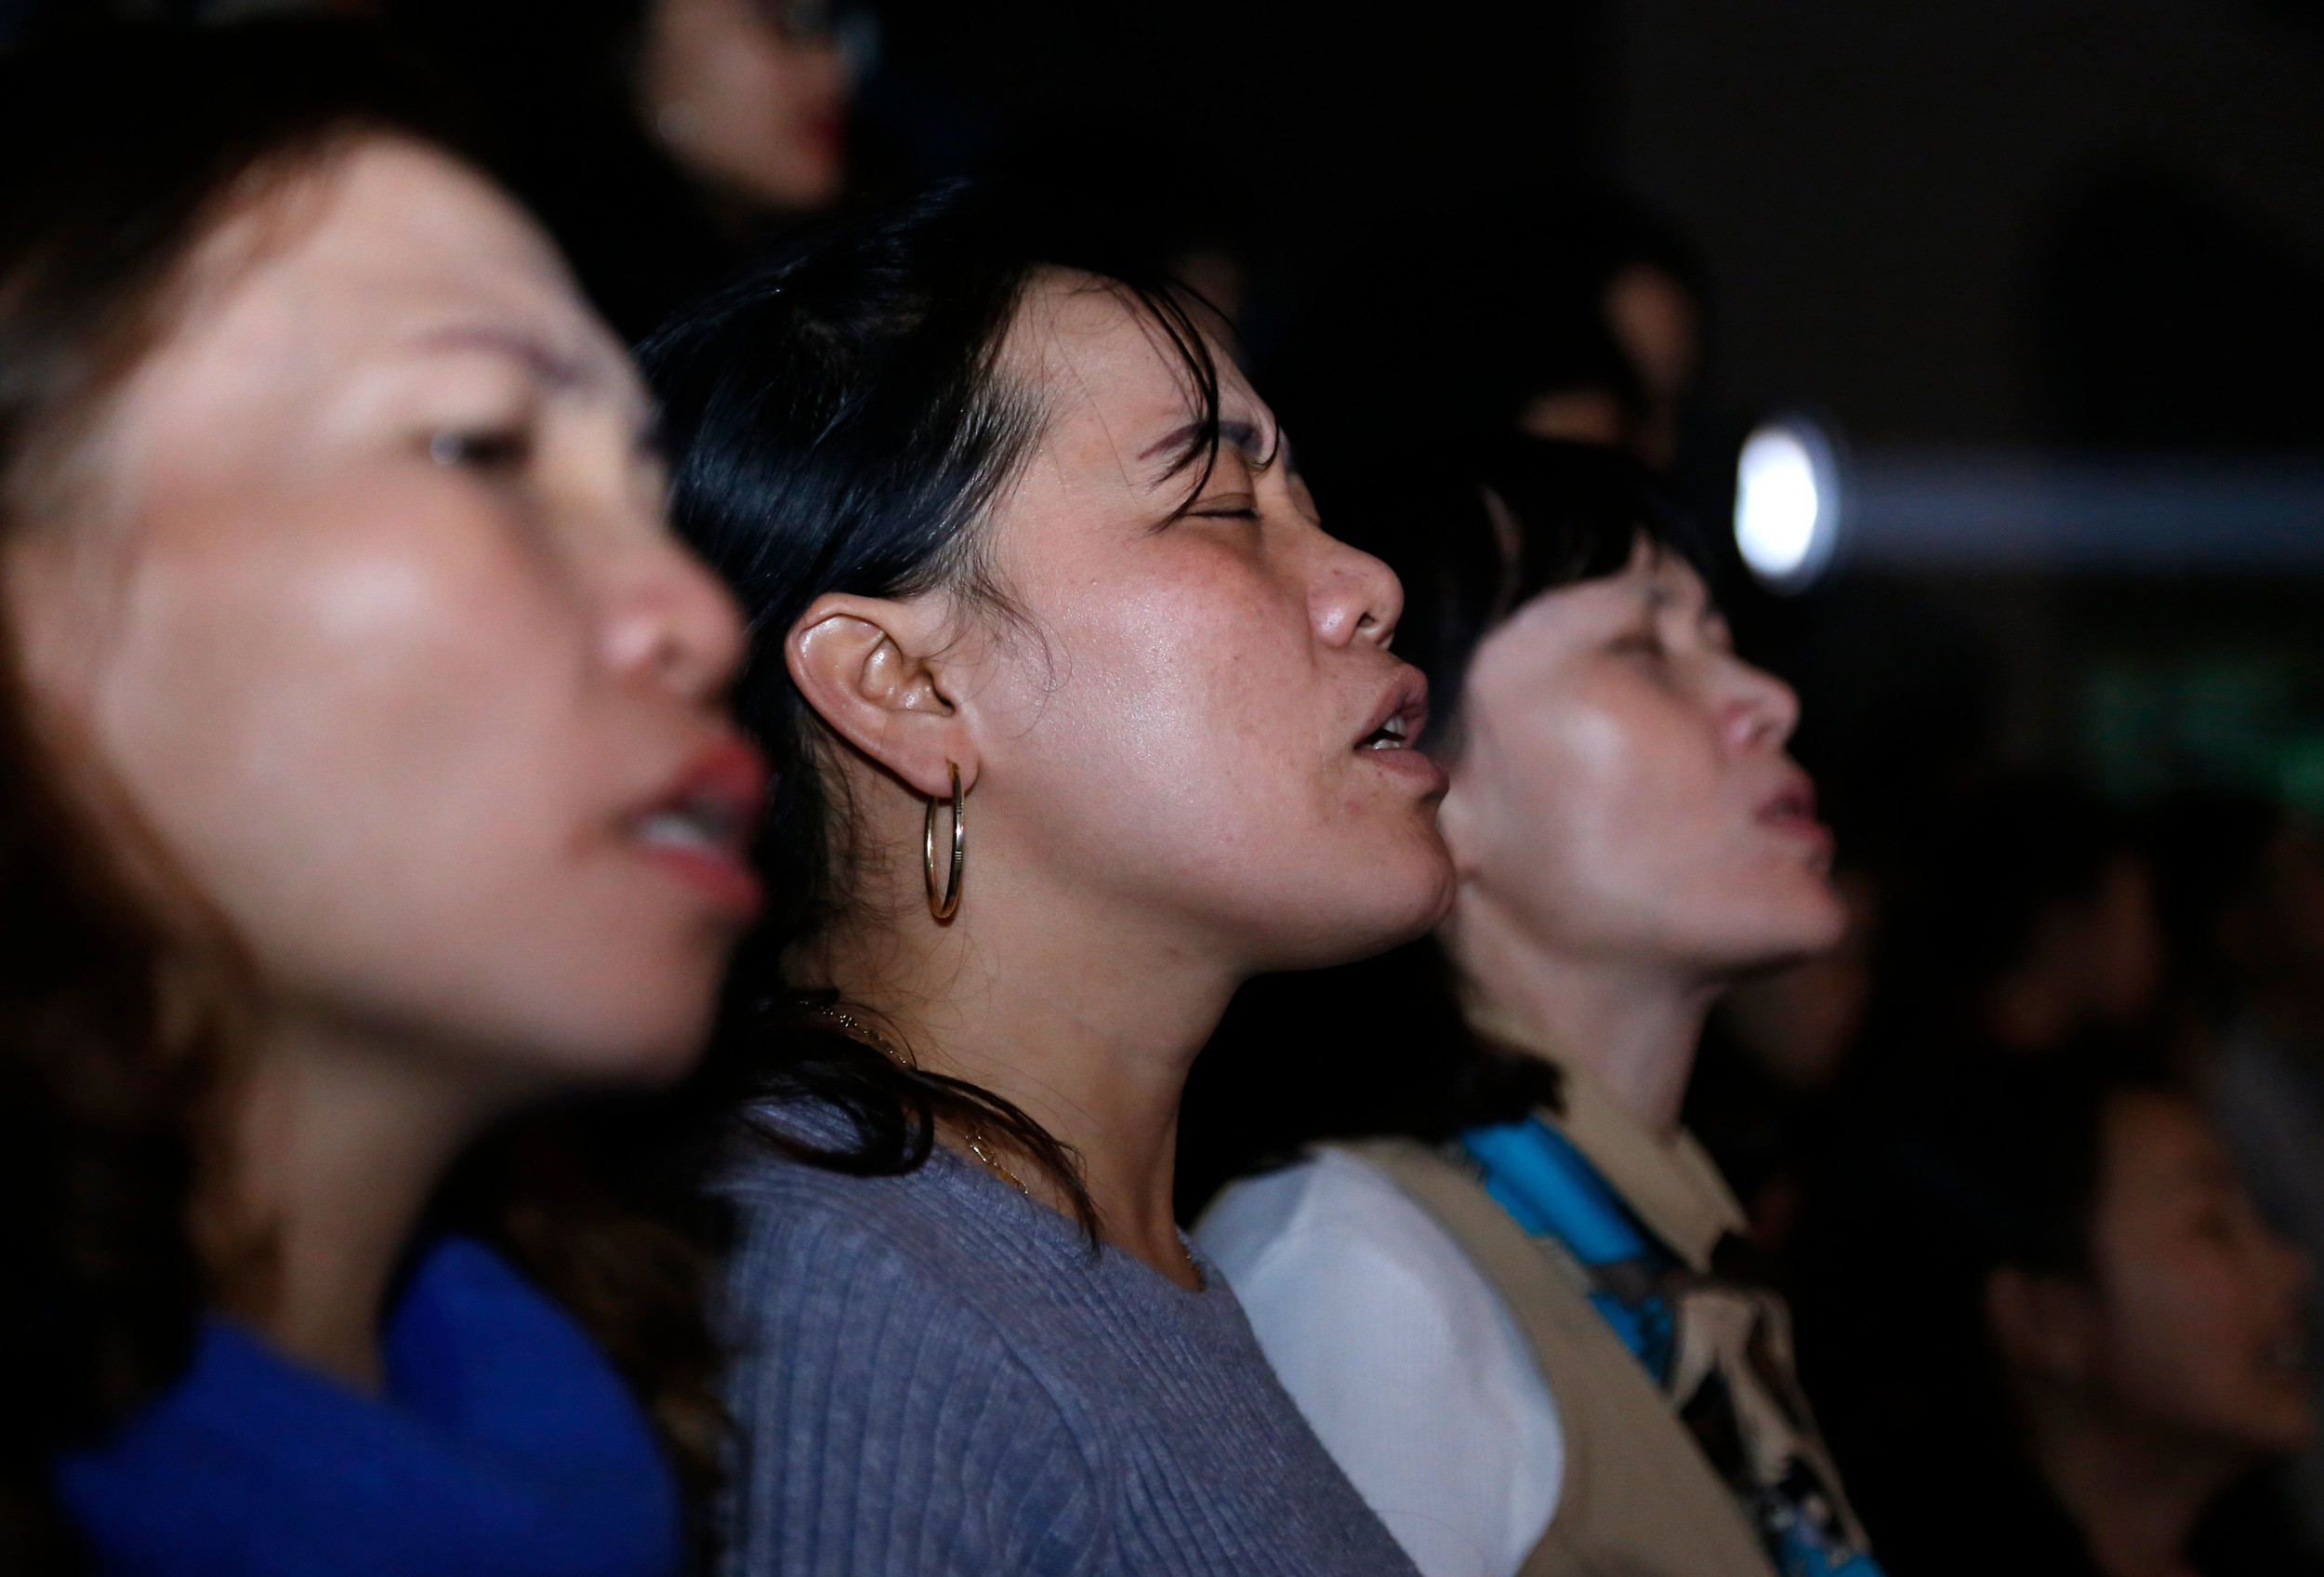 THE ASSOCIATED PRESSChristians pray during an event led by evangelist Franklin Graham in Hanoi, Vietnam, on Dec. 8.